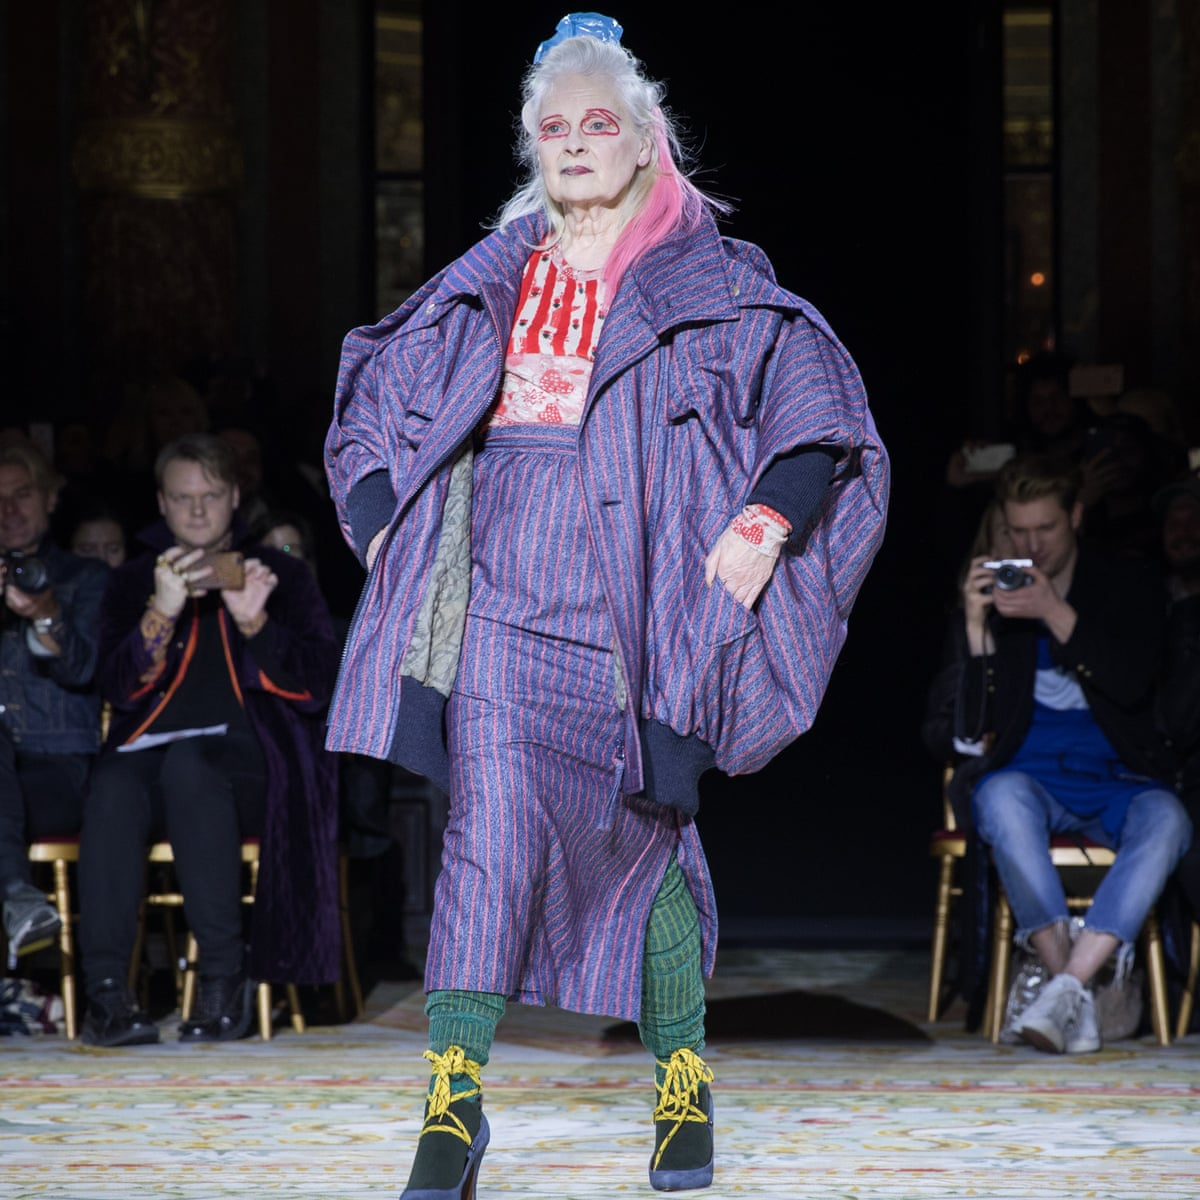 Vivienne Westwood Is The Star Of Her Own Show At Paris Fashion Week Vivienne Westwood The Guardian